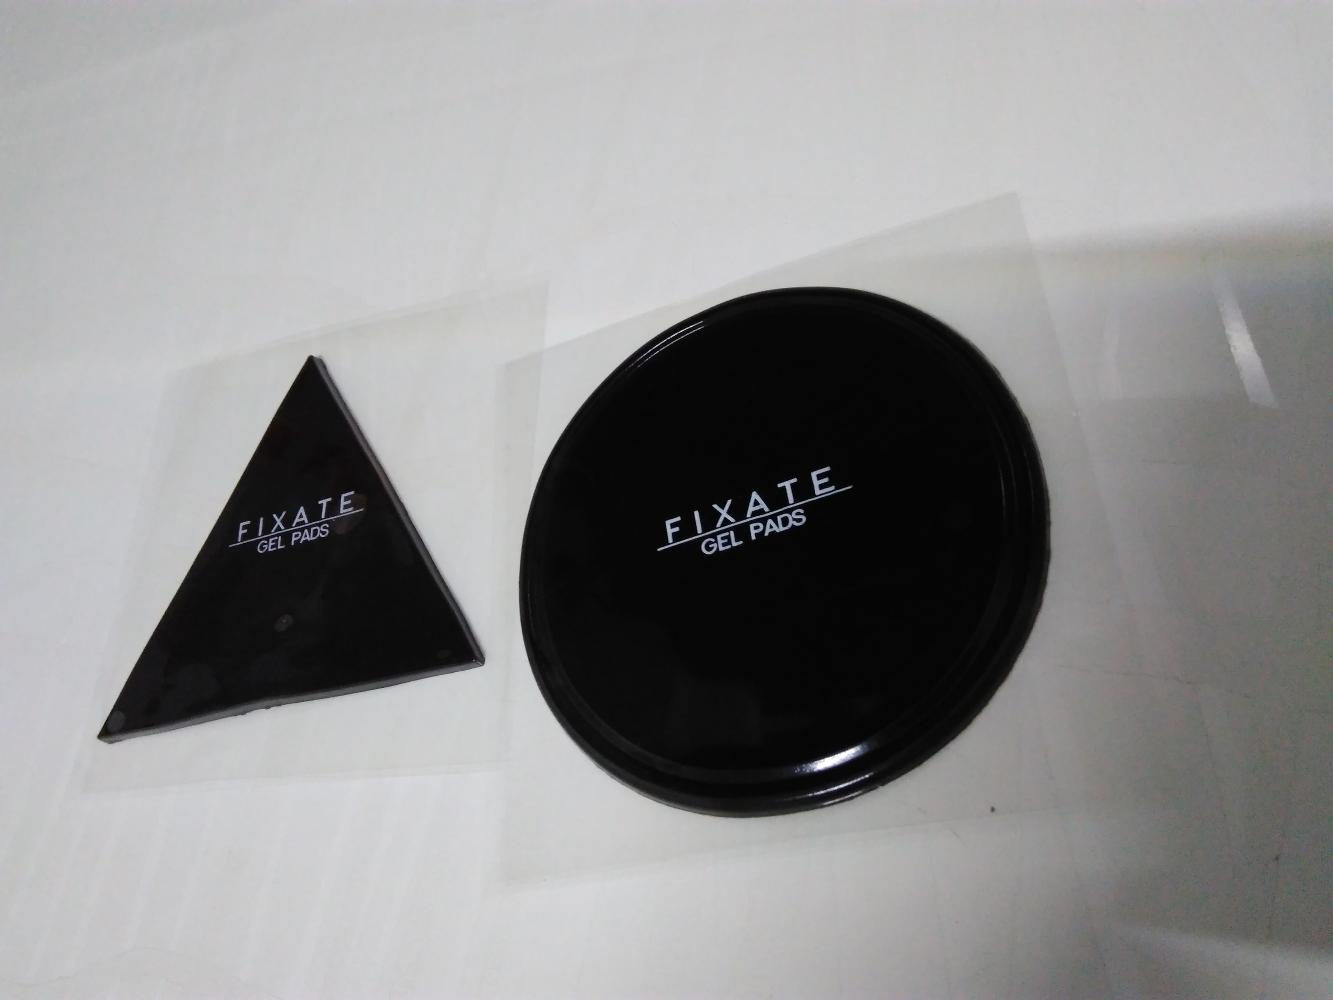 fixate gel pads 2 in 1 pack original series